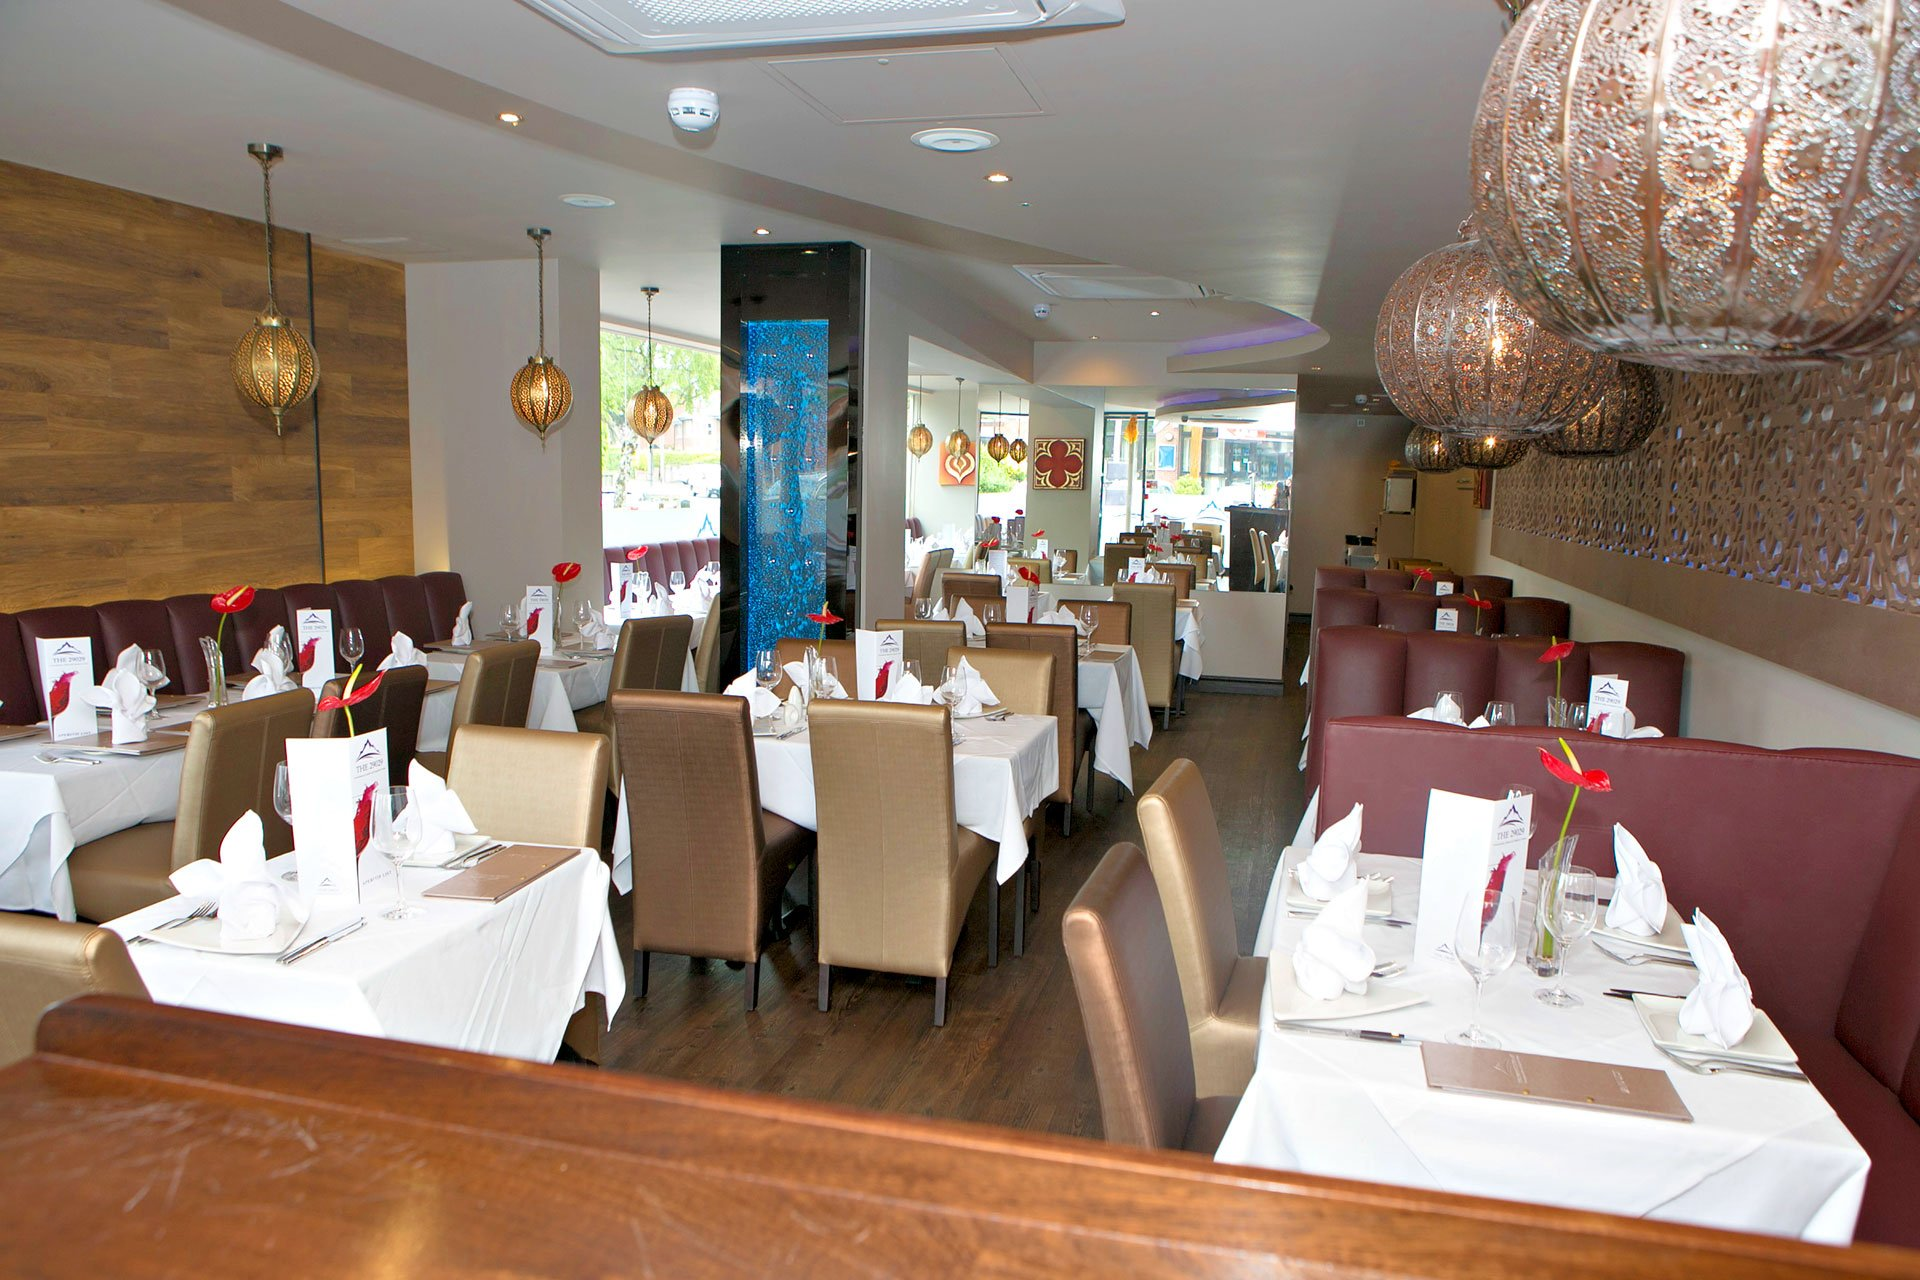 Lunch - The 29029 Restaurant Broadstone